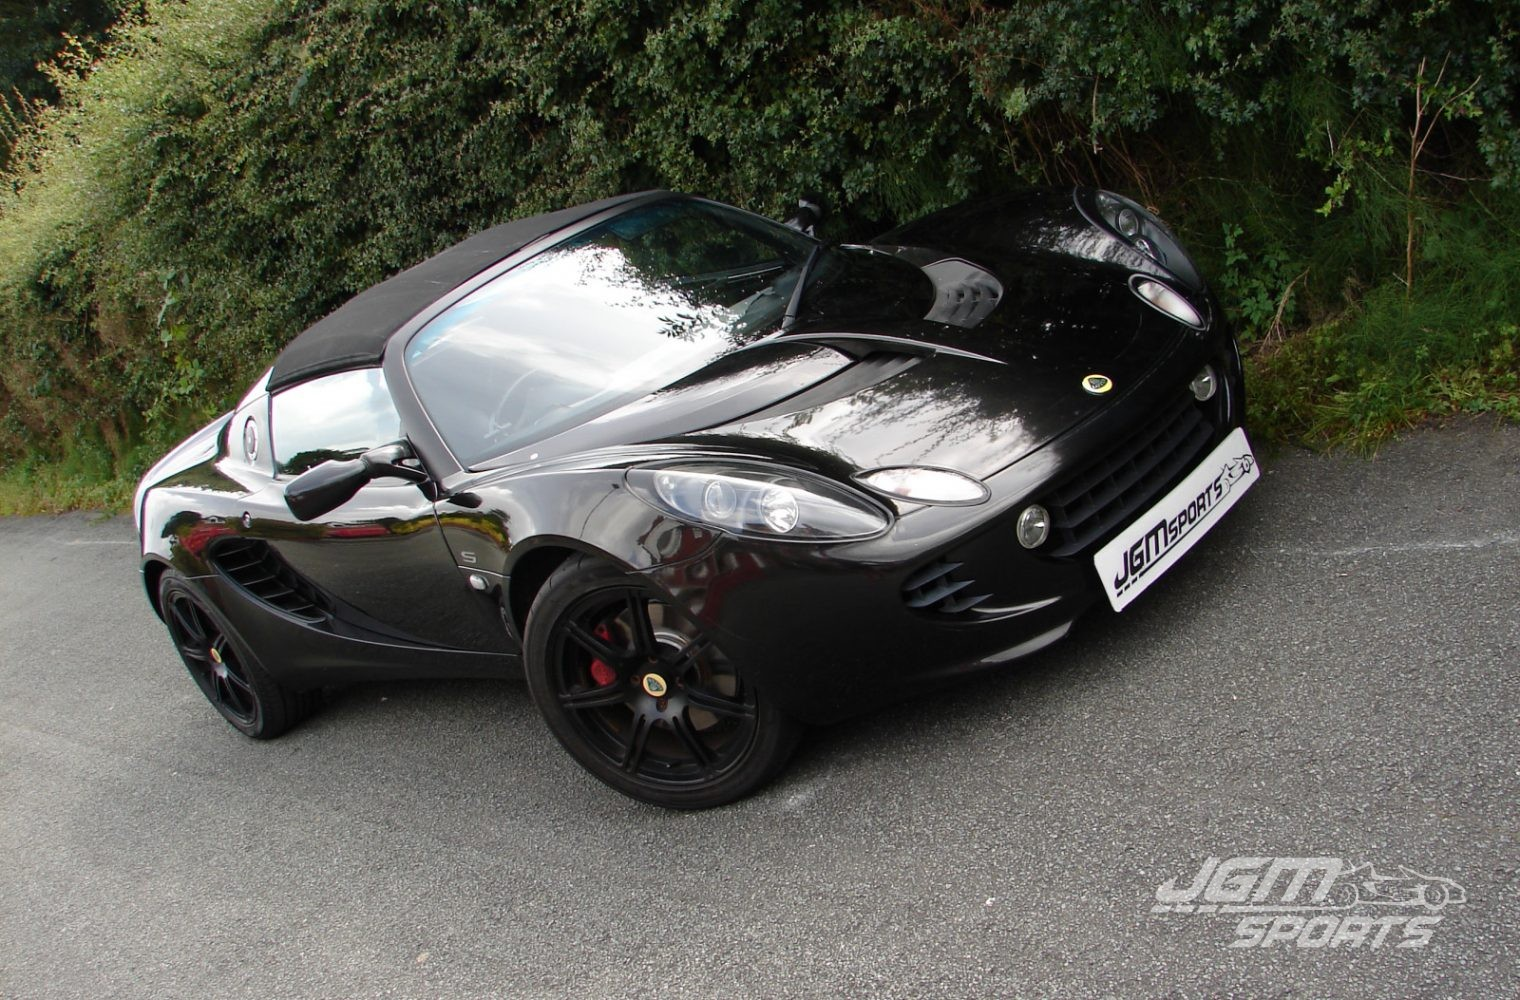 2007 S2 LOTUS ELISE S TOURING PACK STARLIGHT BLACK ONLY 2 OWNERS ...